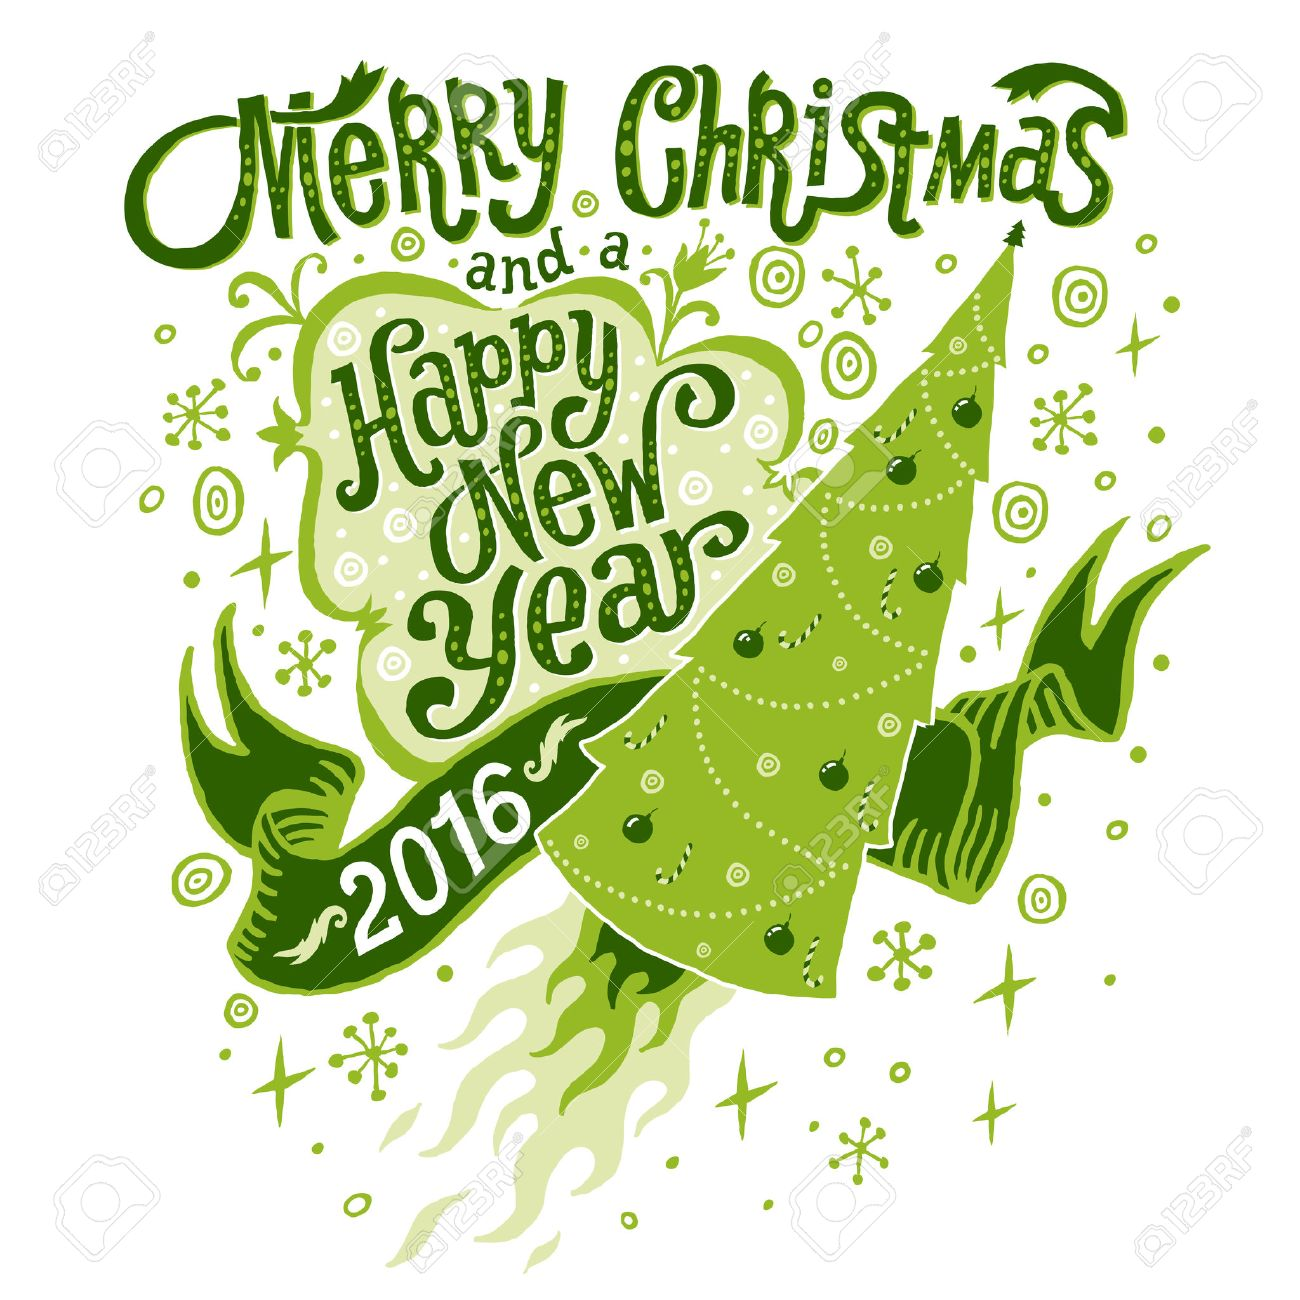 Merry Christmas And Happy New Year 2016 Greeting Card Isolated